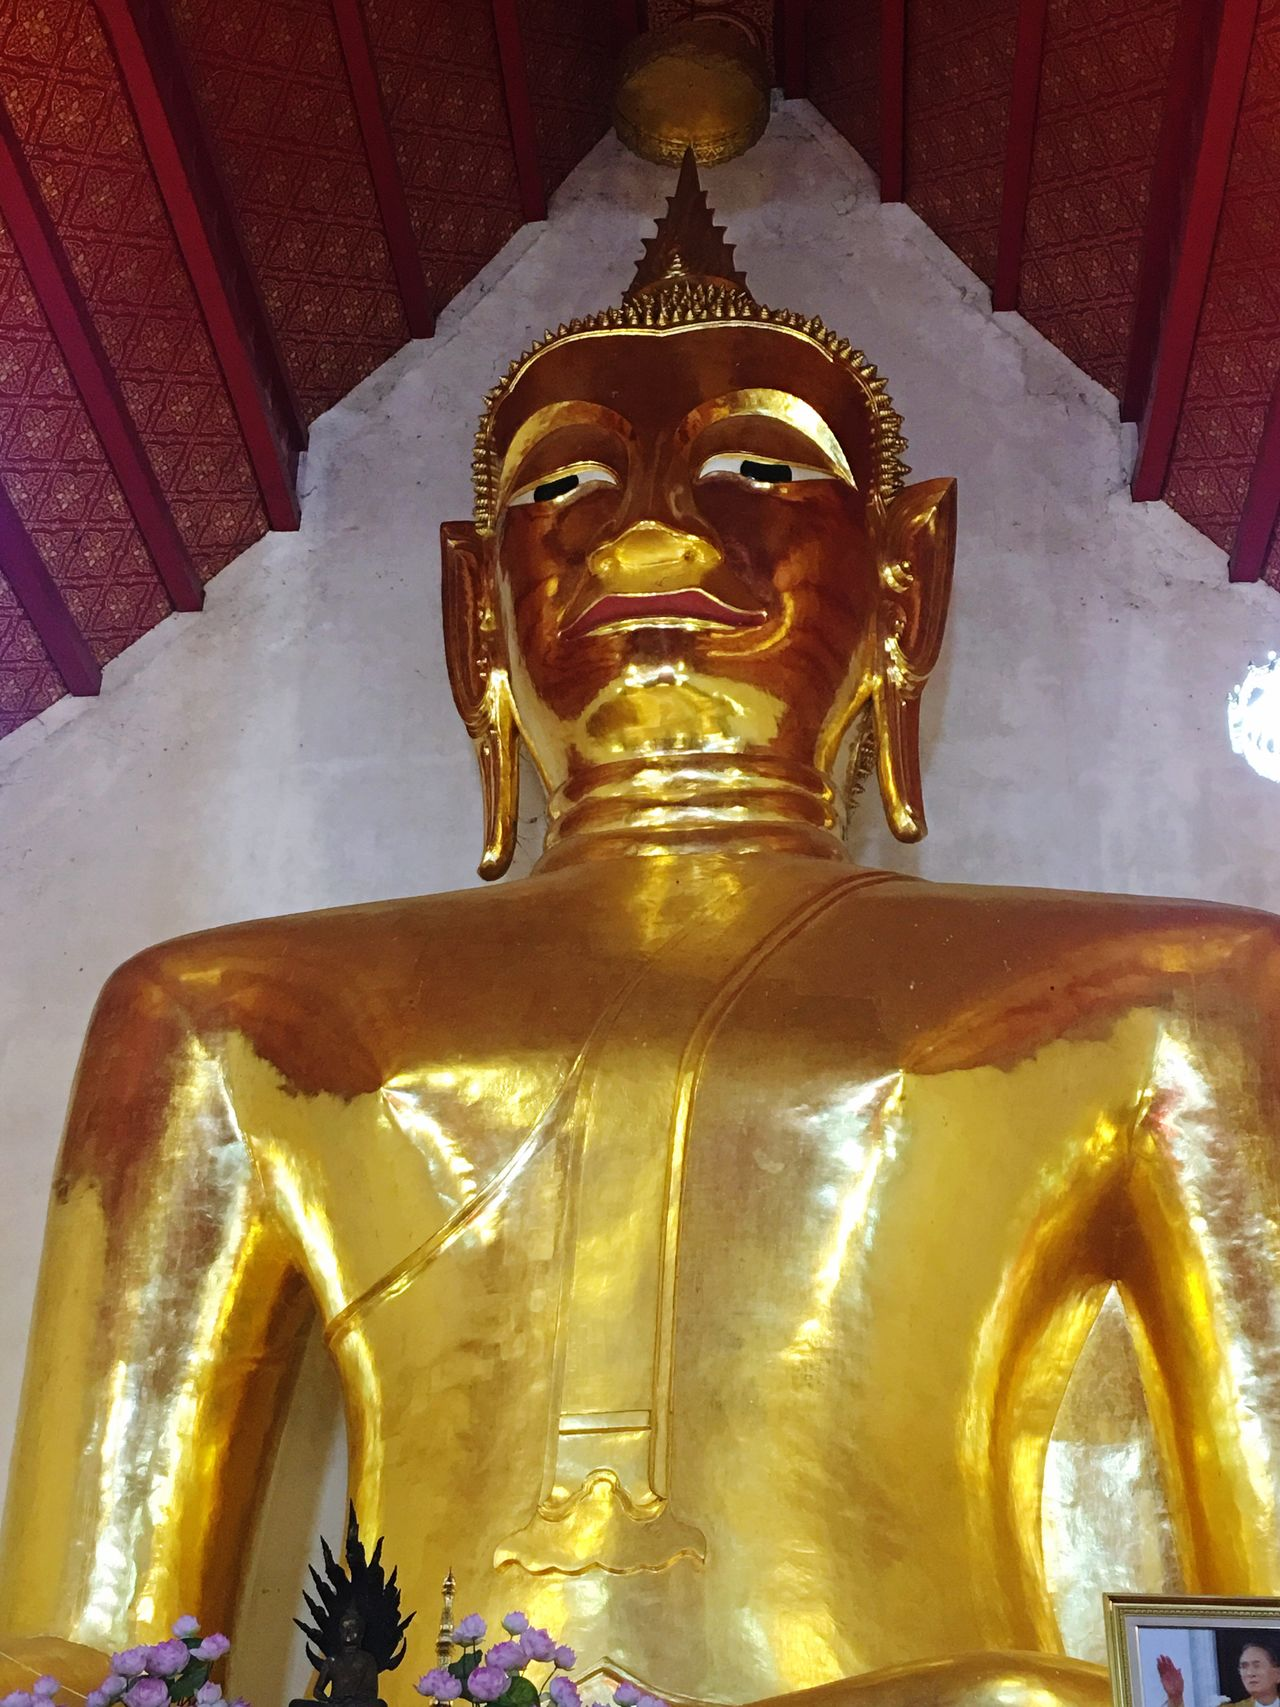 Religion Spirituality Statue Gold Colored Place Of Worship Gold No People Sculpture Indoors  Day